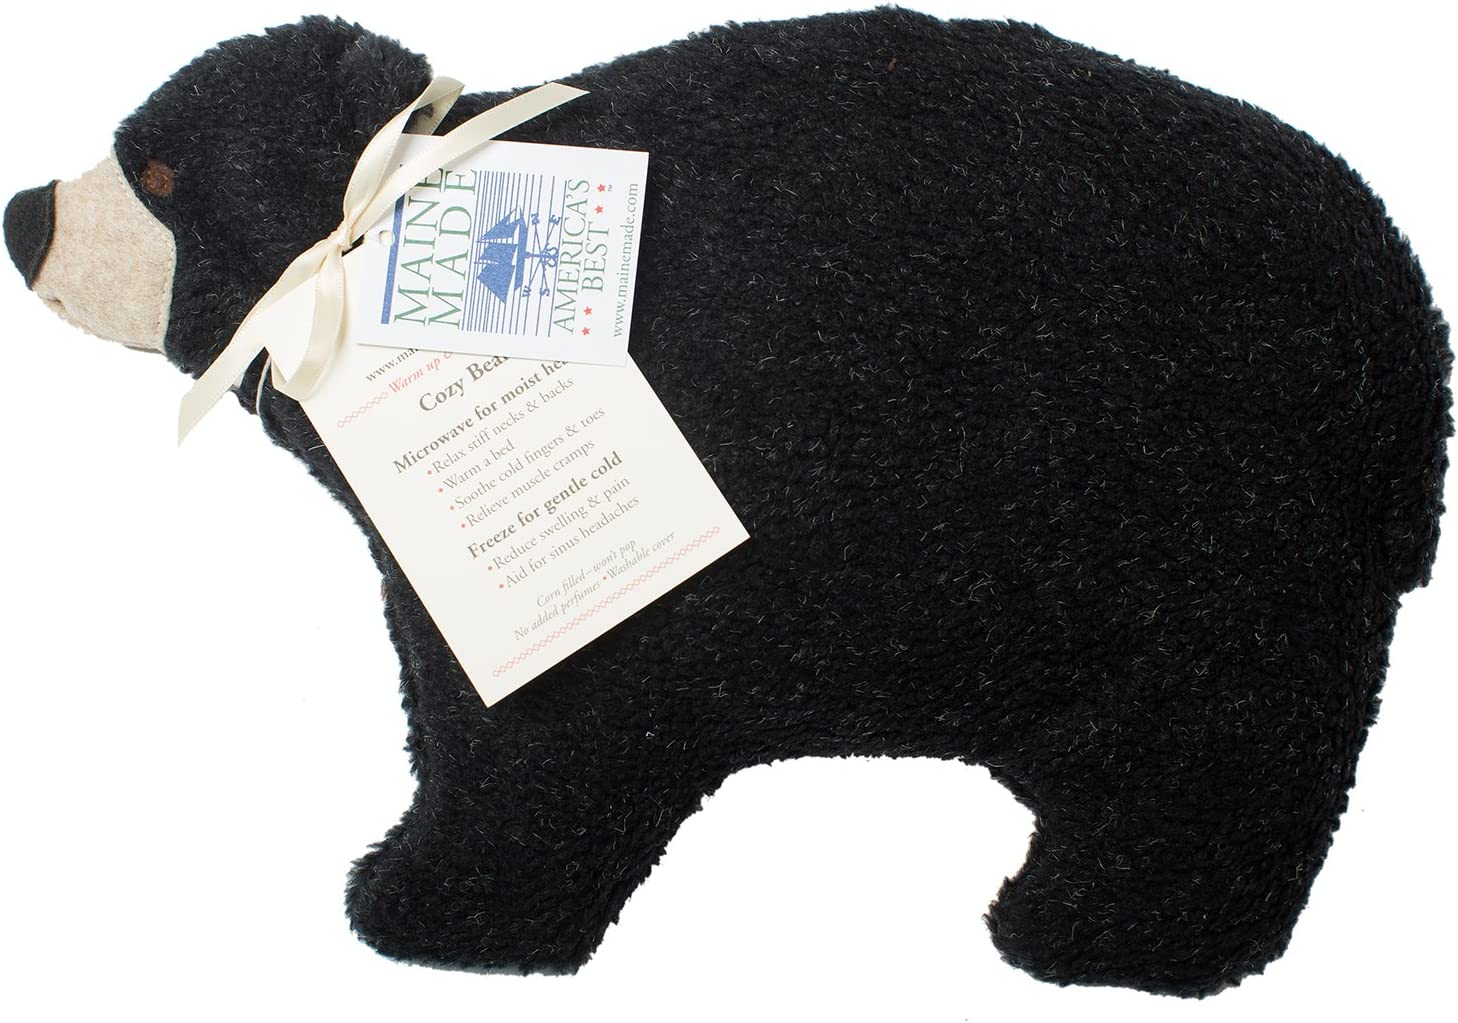 Maine Warmers Black Bear Microwave Corn Filled Heating Pad - Heat or Freeze!